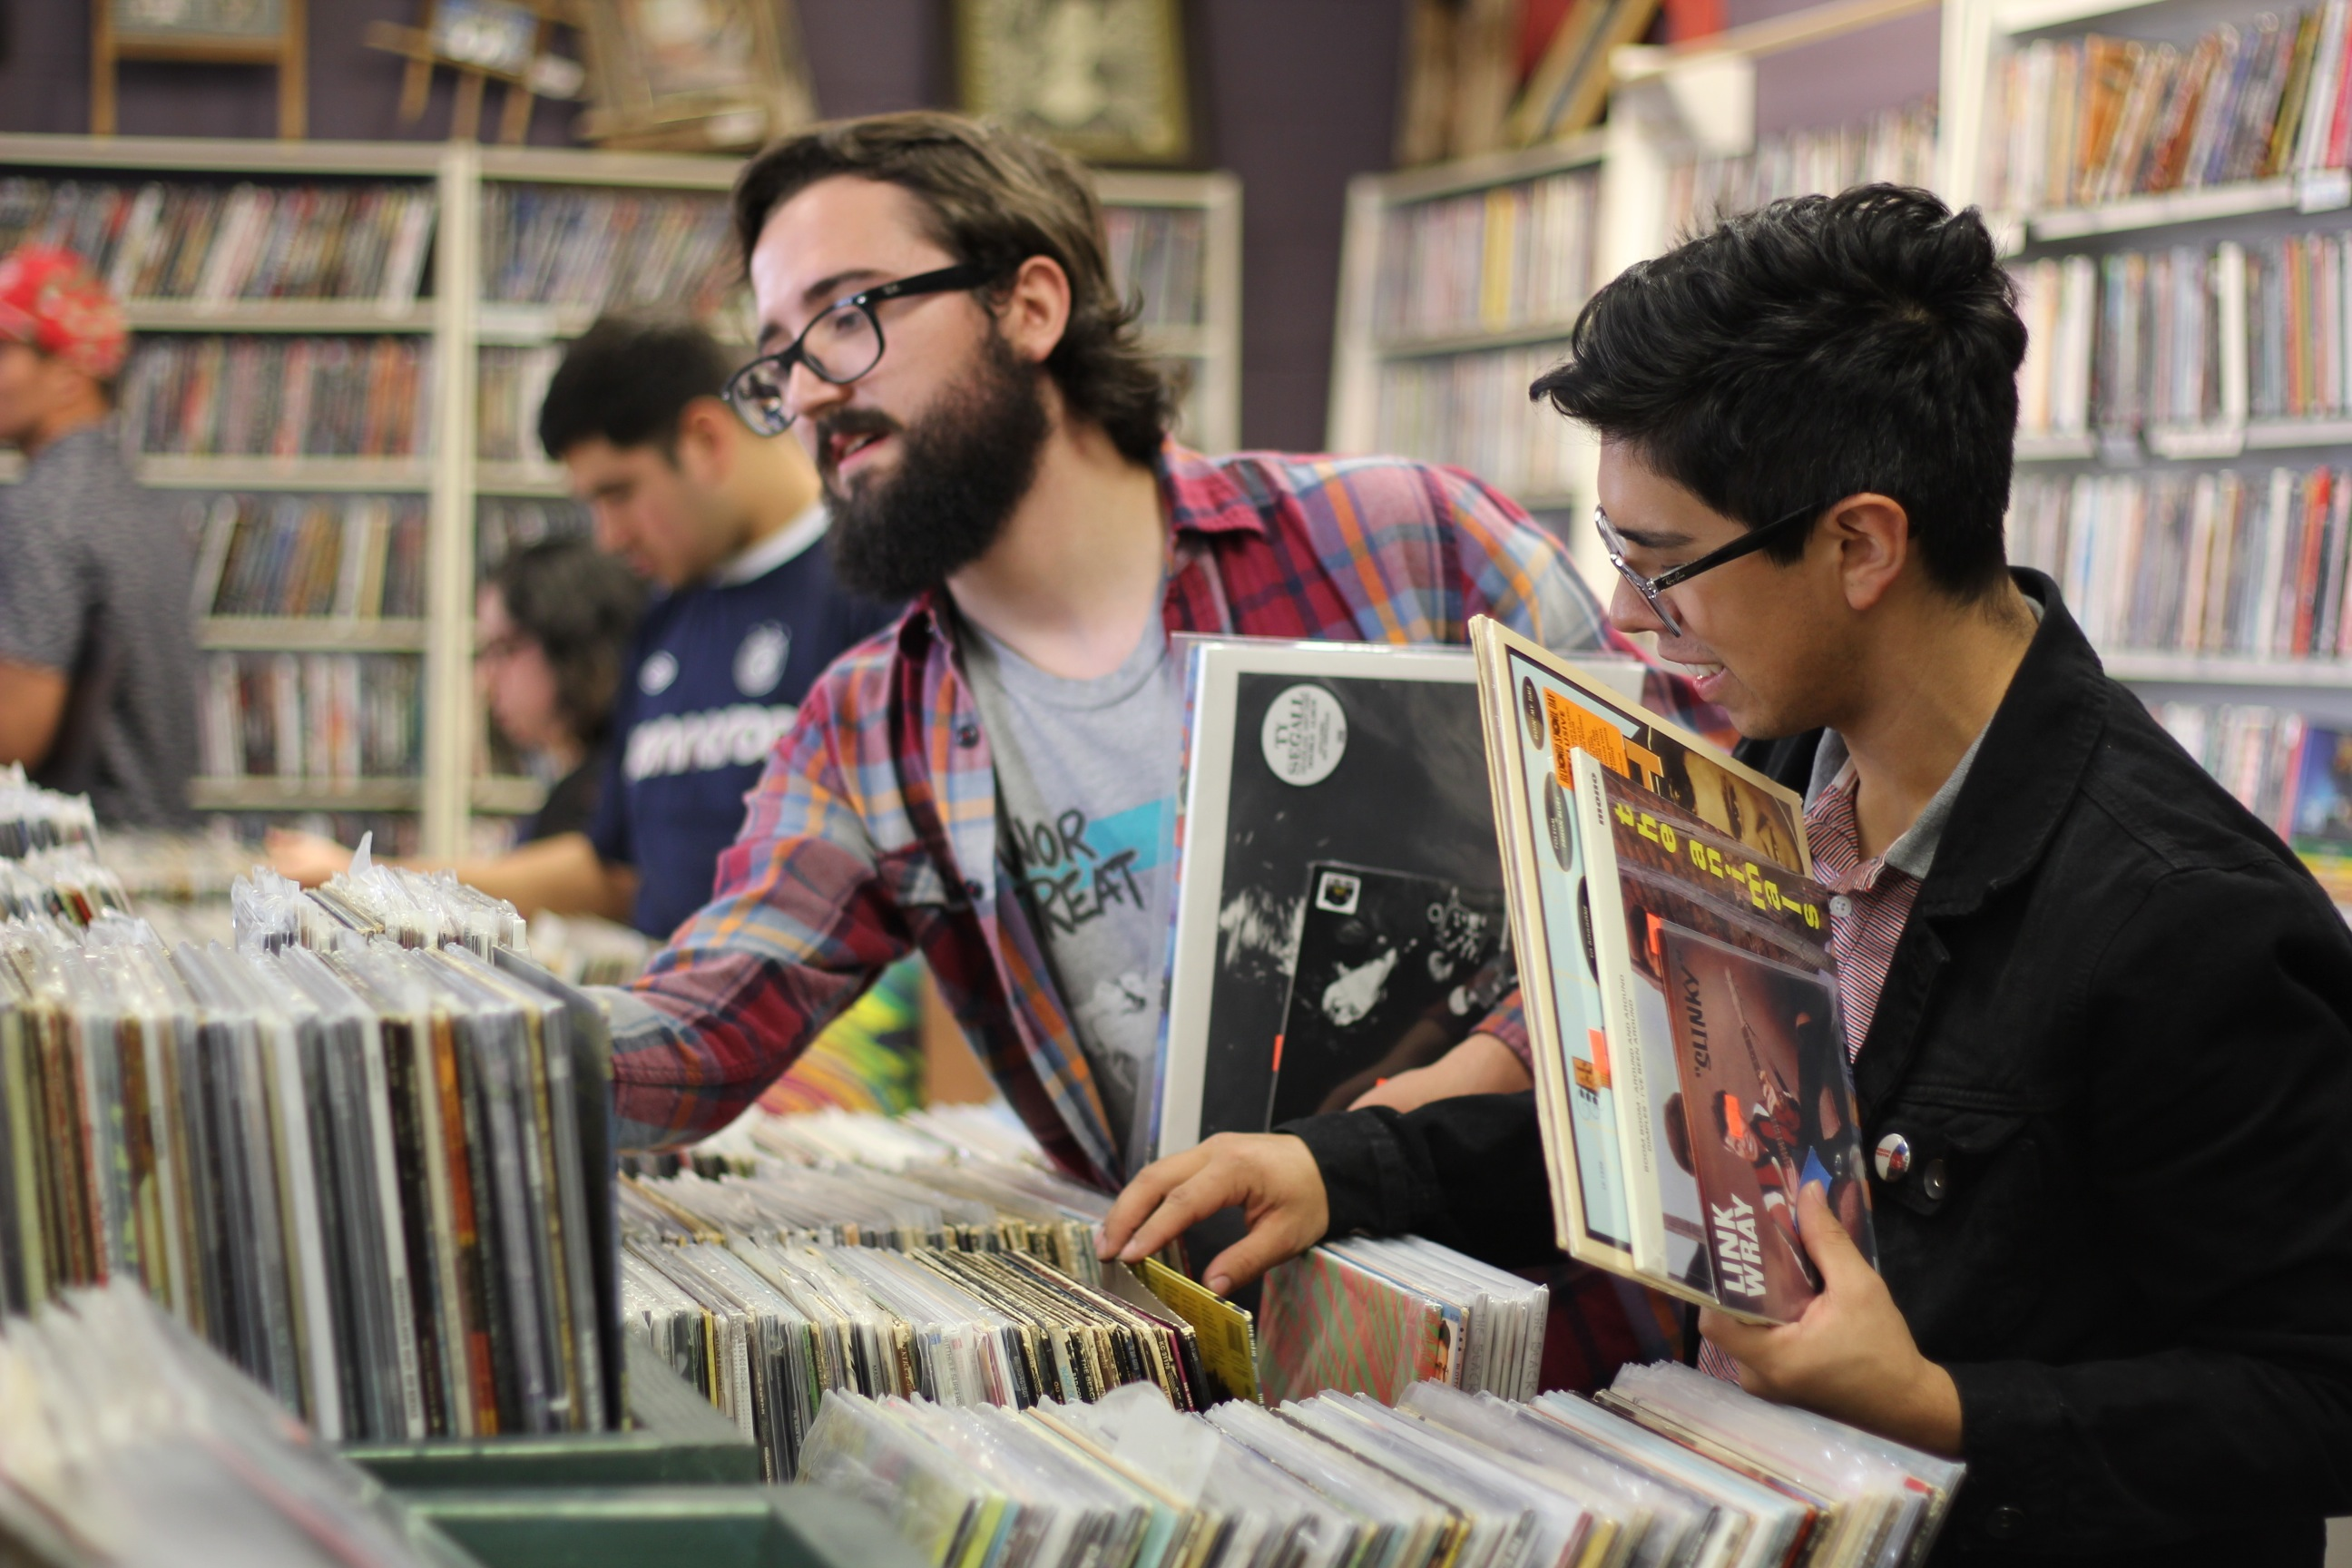 Mason Shirley (left) and Joshua DeLeon browse through the records at Disc Go Round on Record Store Day.